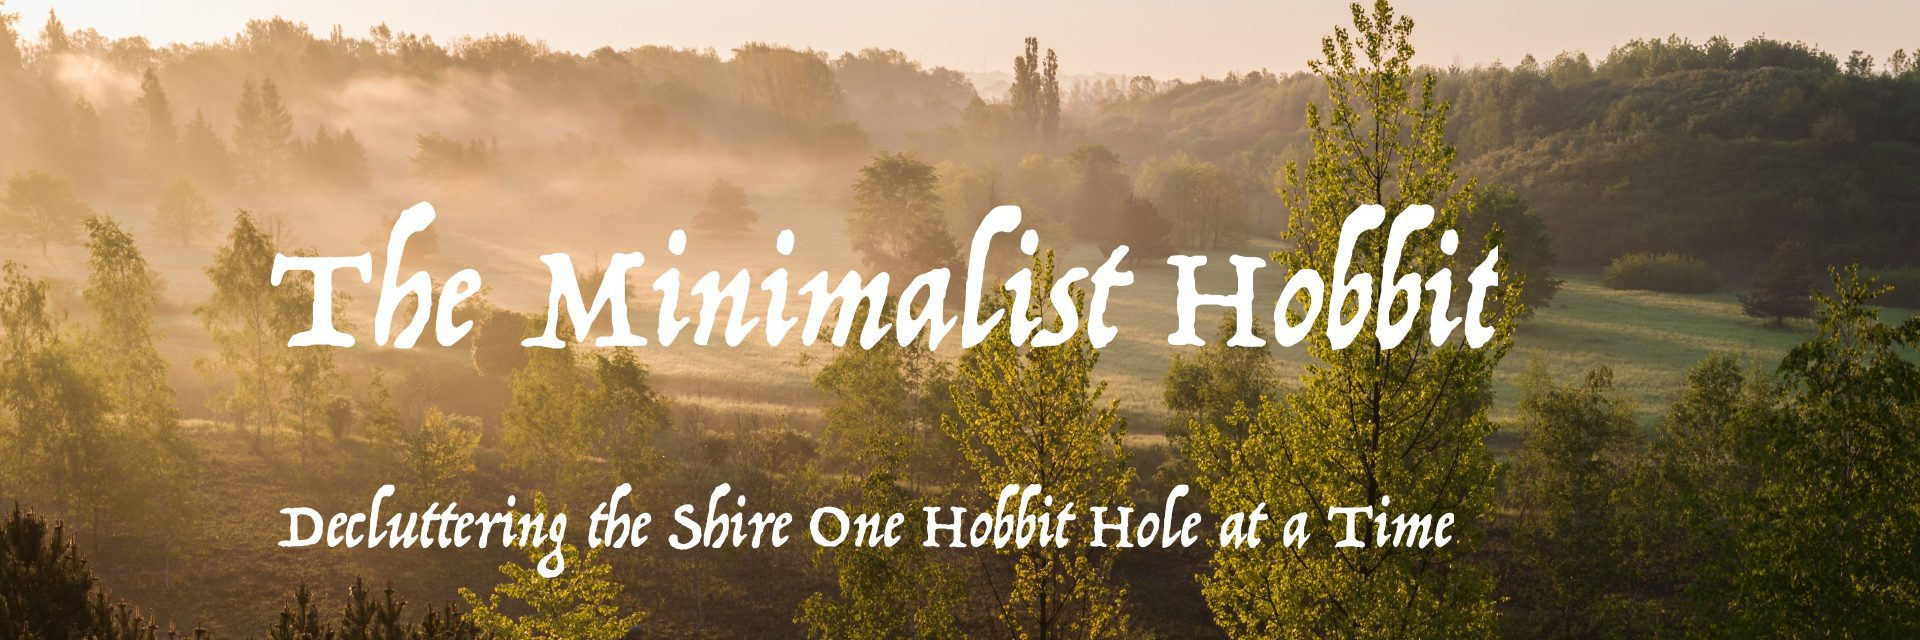 The Minimalist Hobbit